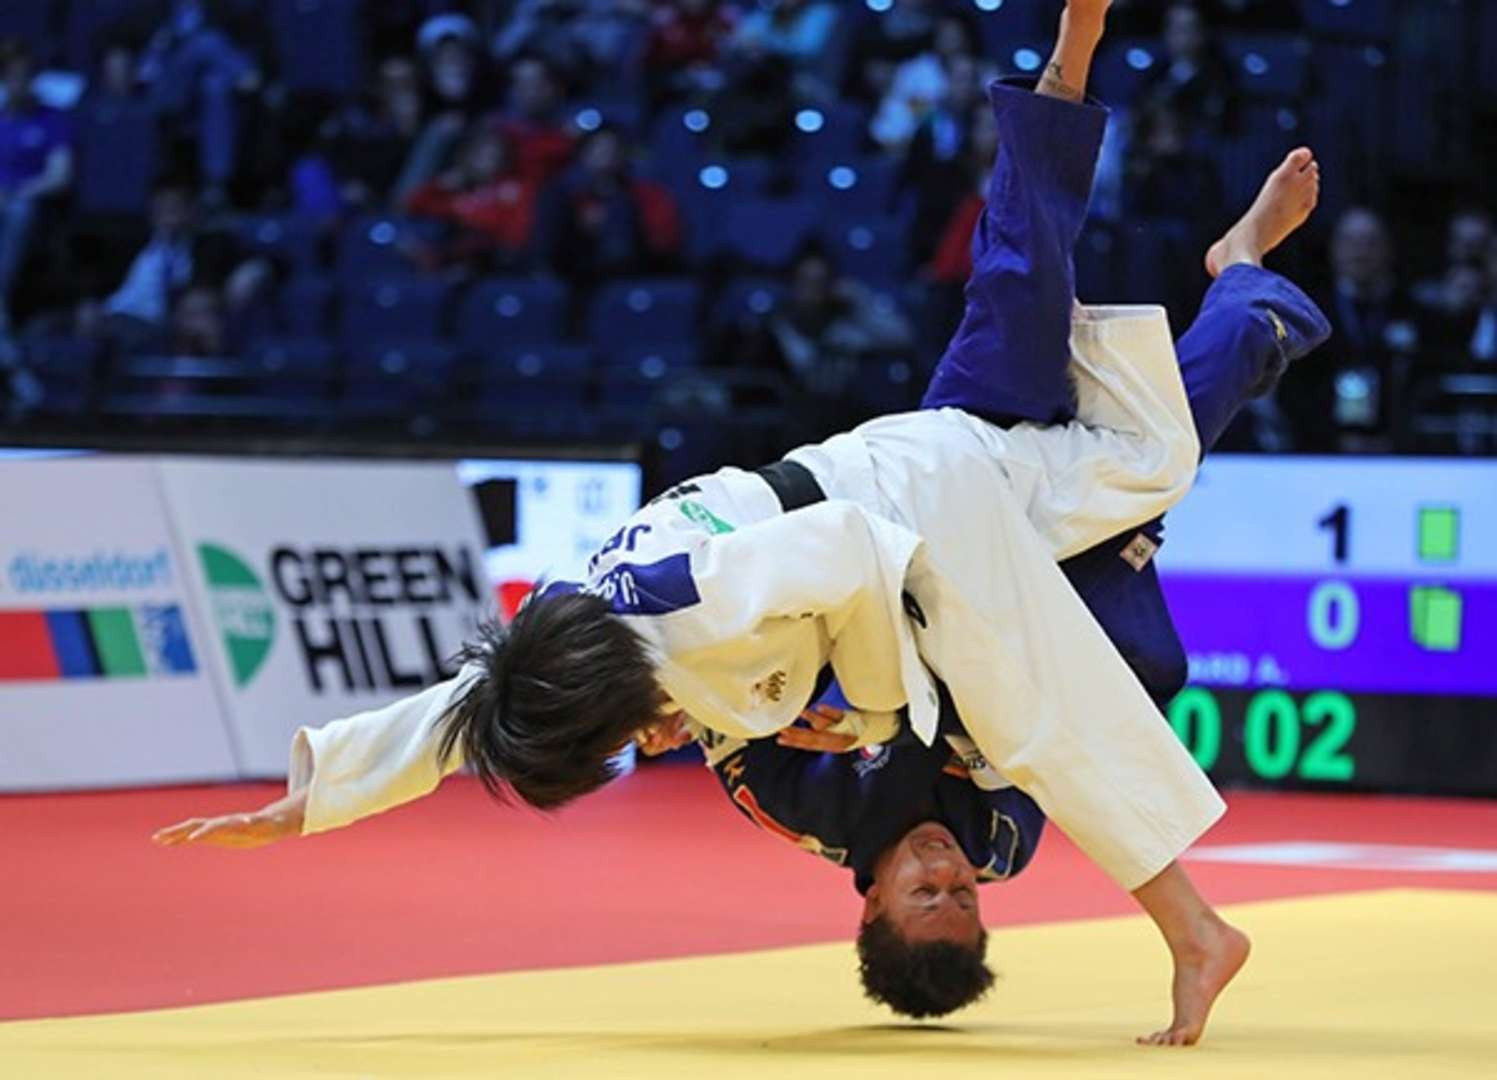 There was record prize money of $1.4 million in judo's biggest events, including the World Tour, last year ©IJF